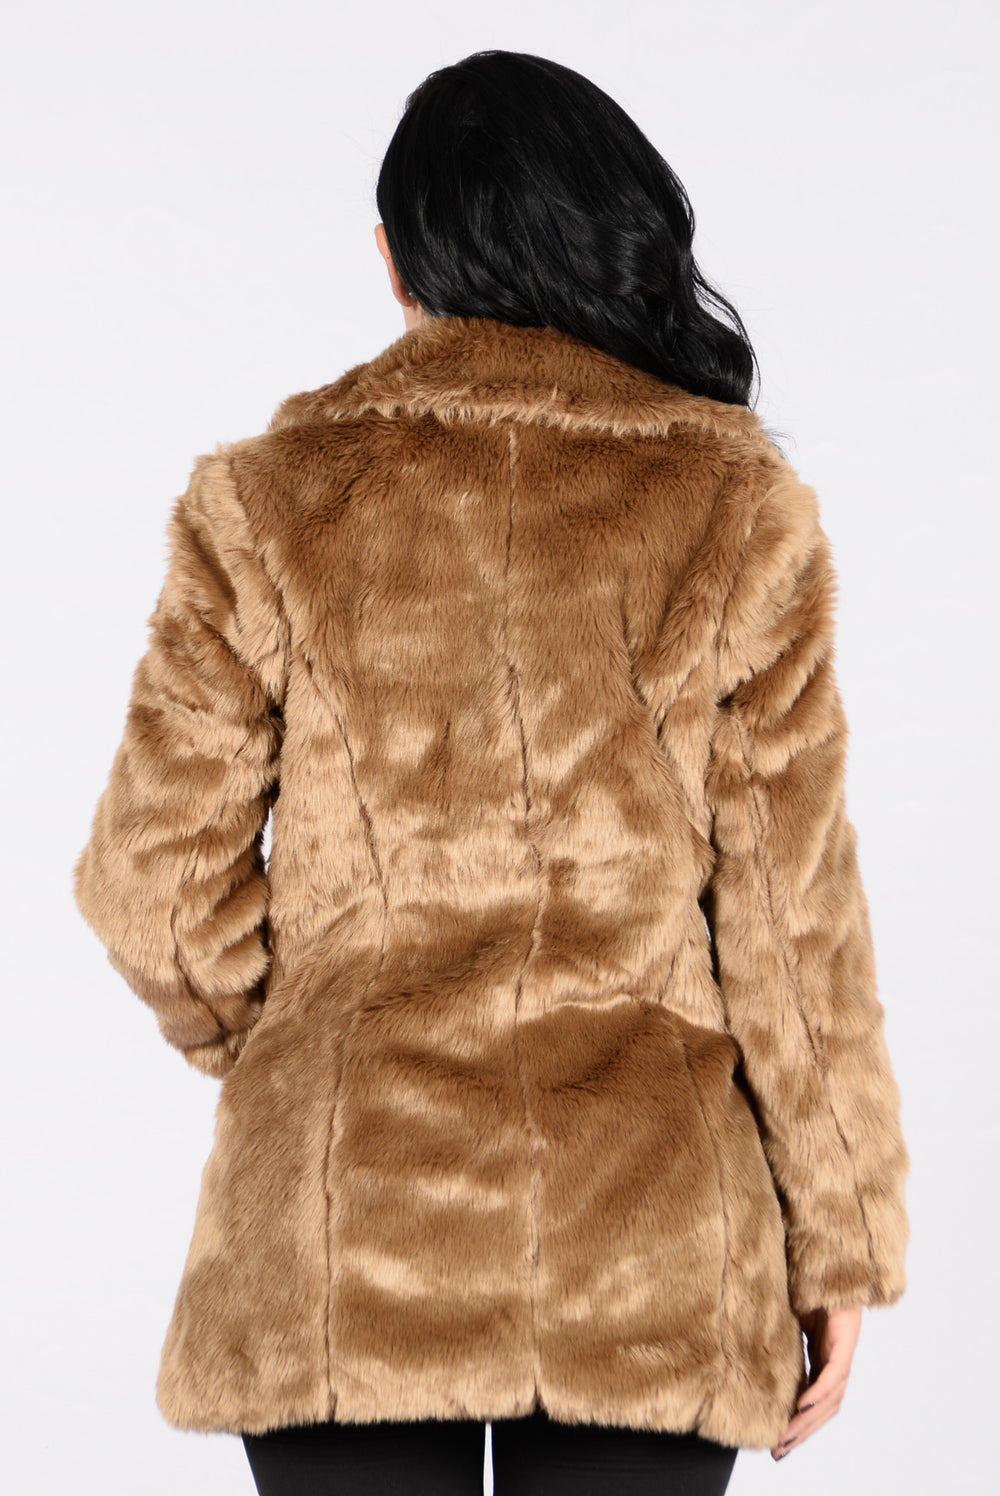 Bags Of Money Jacket - Camel